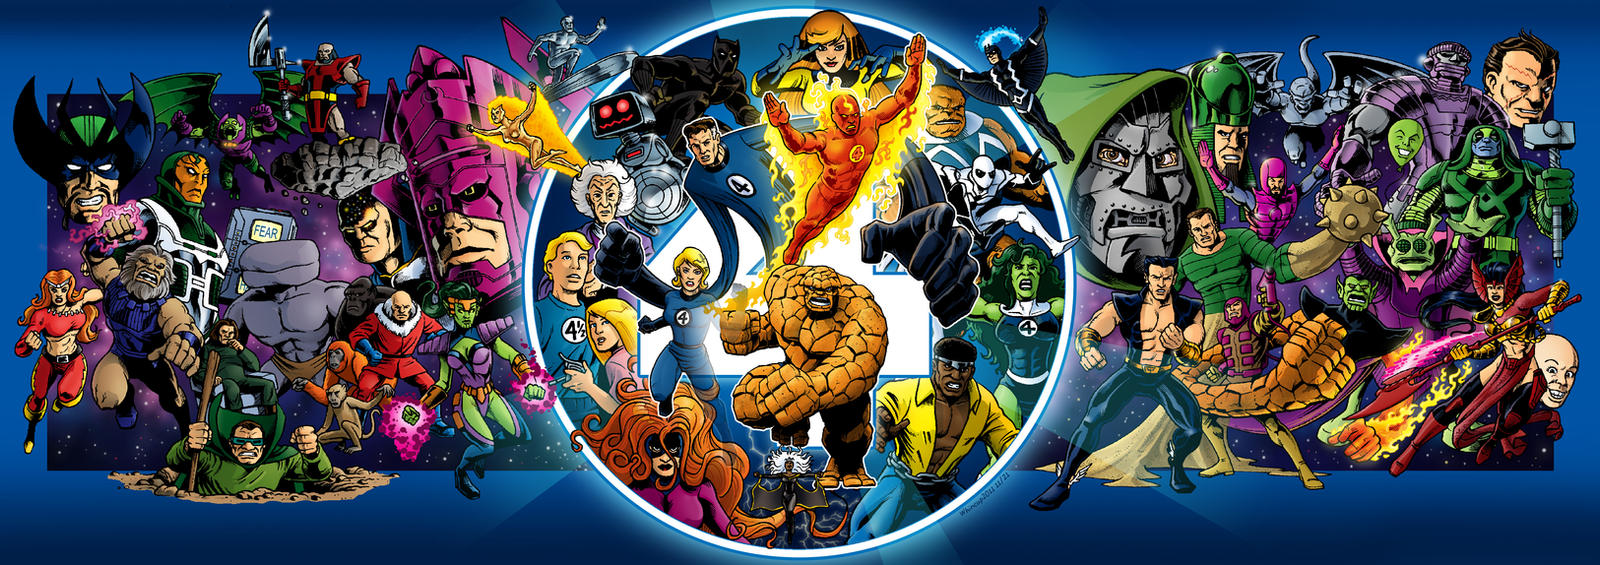 Imagenes de Calidad (no-anime) - Página 22 50_for_50___fantastic_four_by_66lightning-d4gwwlb